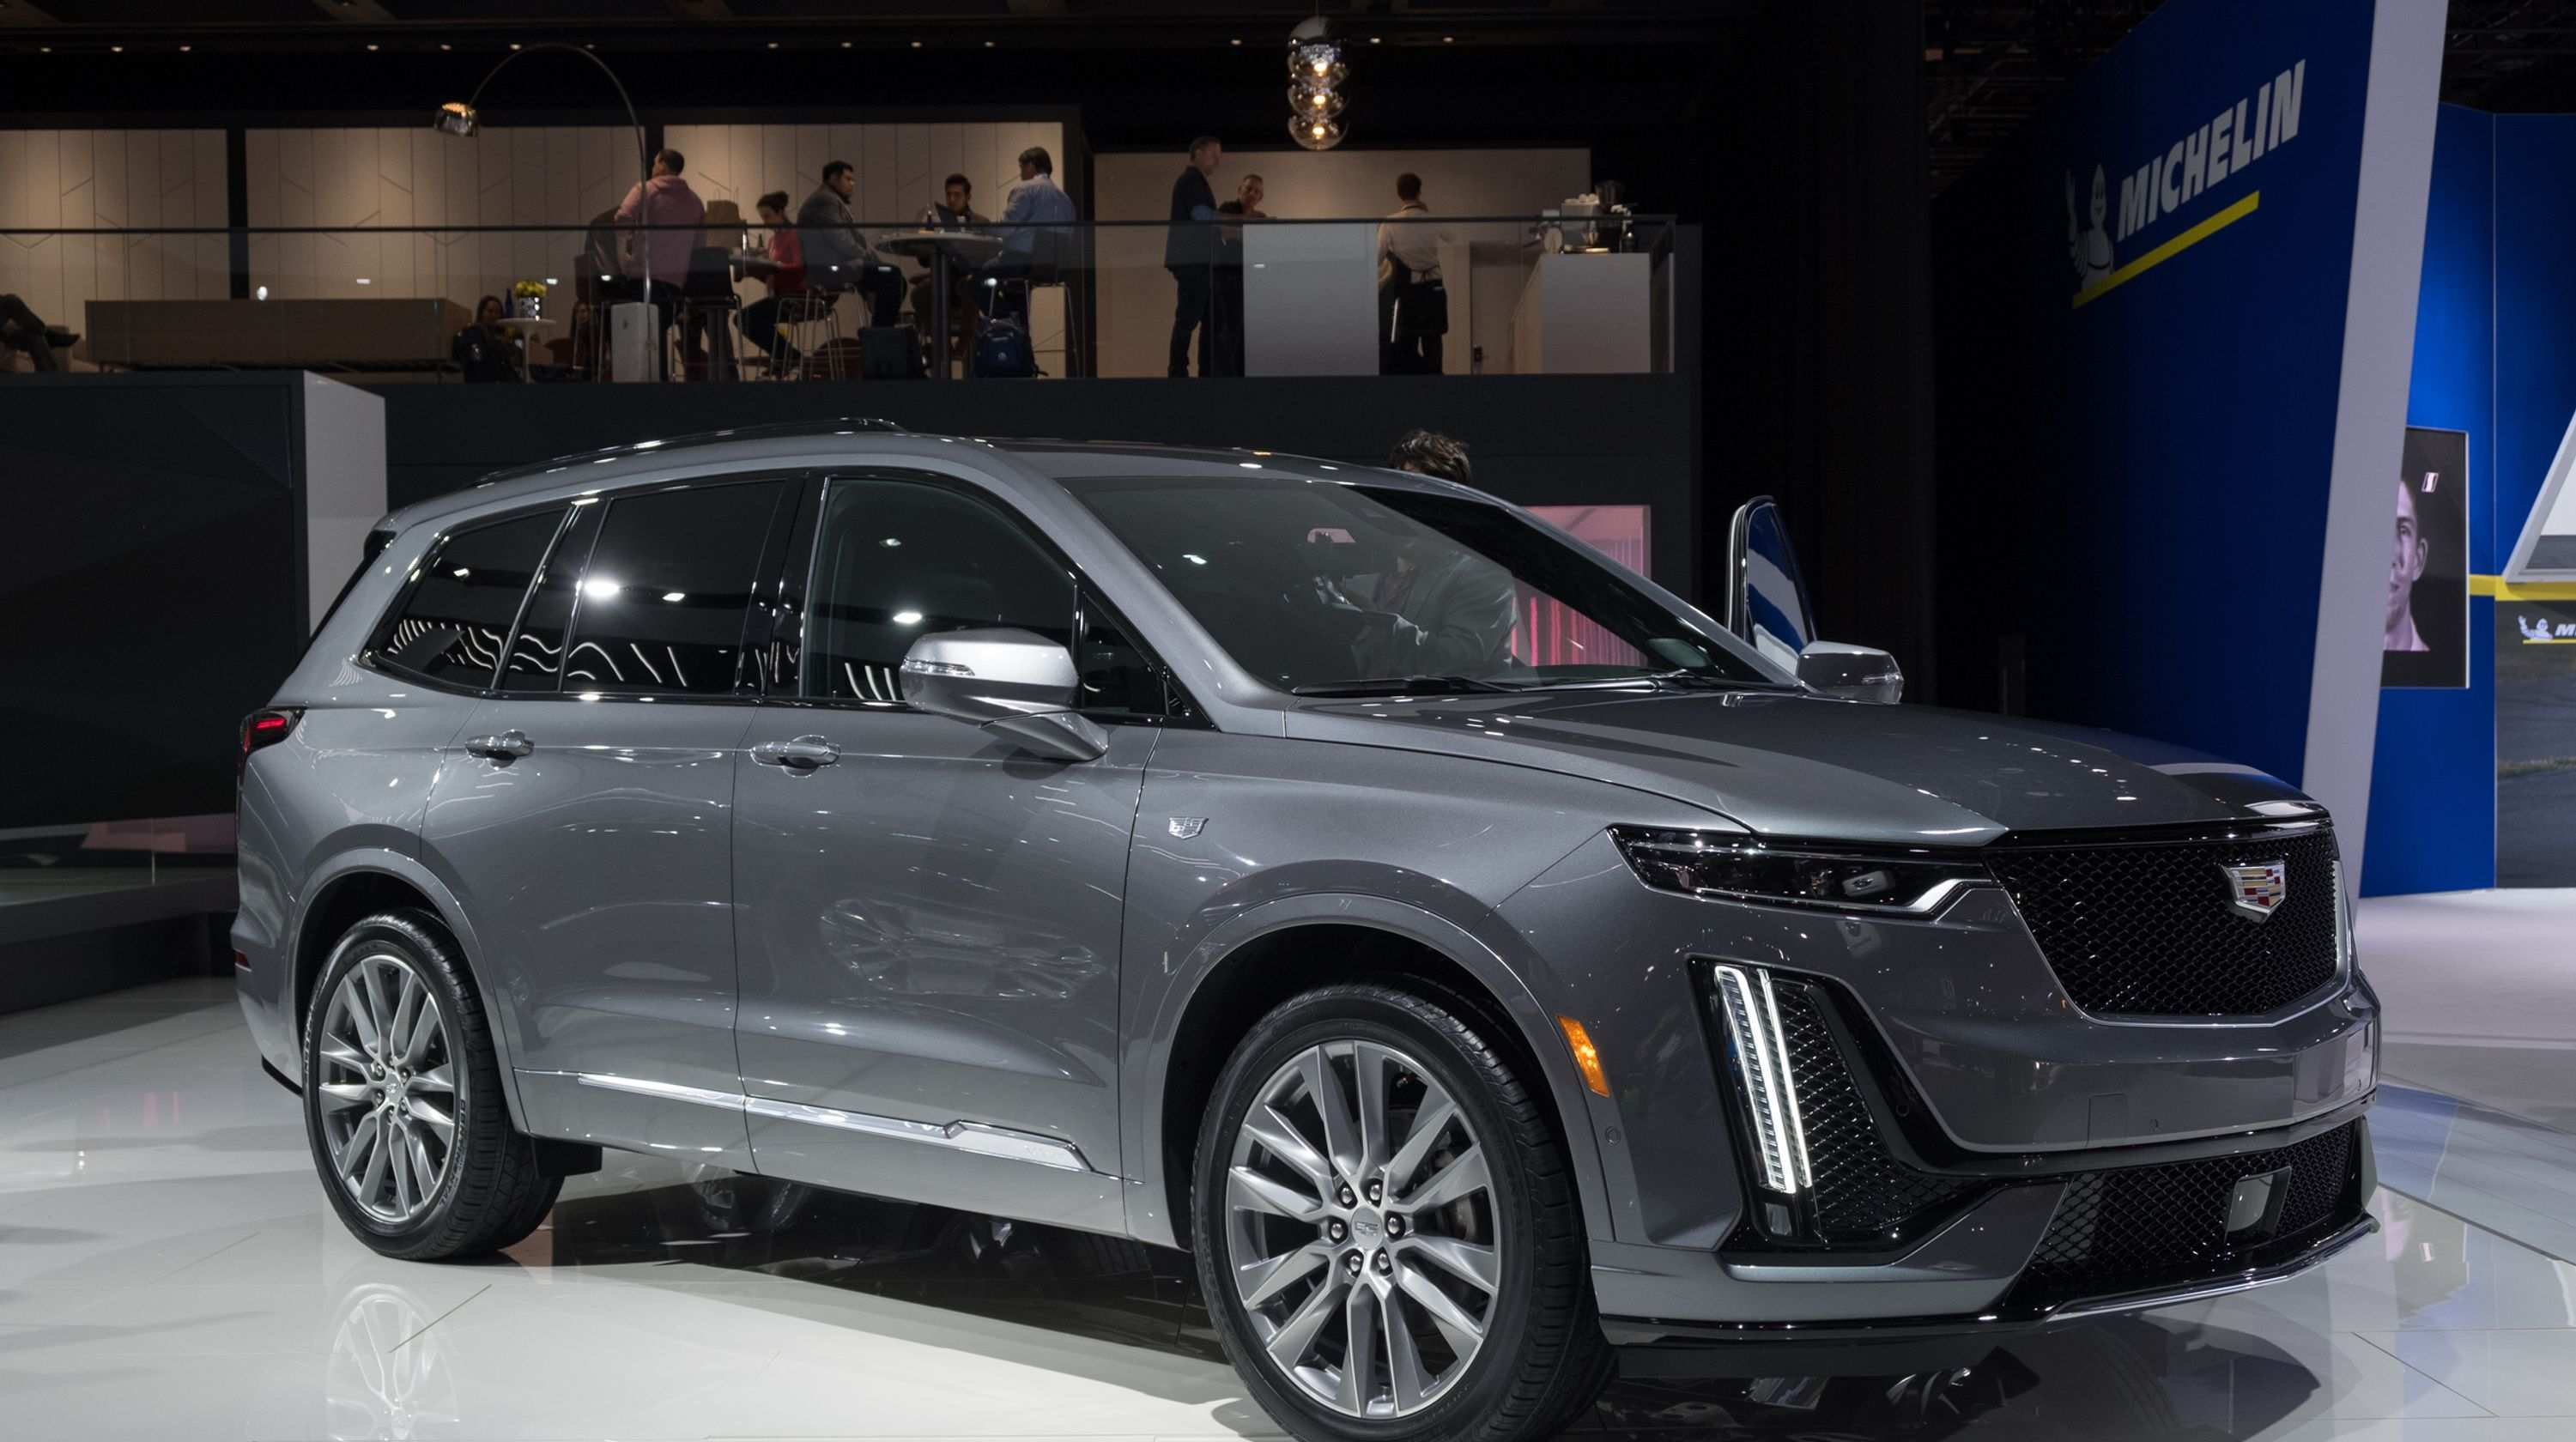 21 Concept of 2019 Cadillac Xt6 Configurations by 2019 Cadillac Xt6